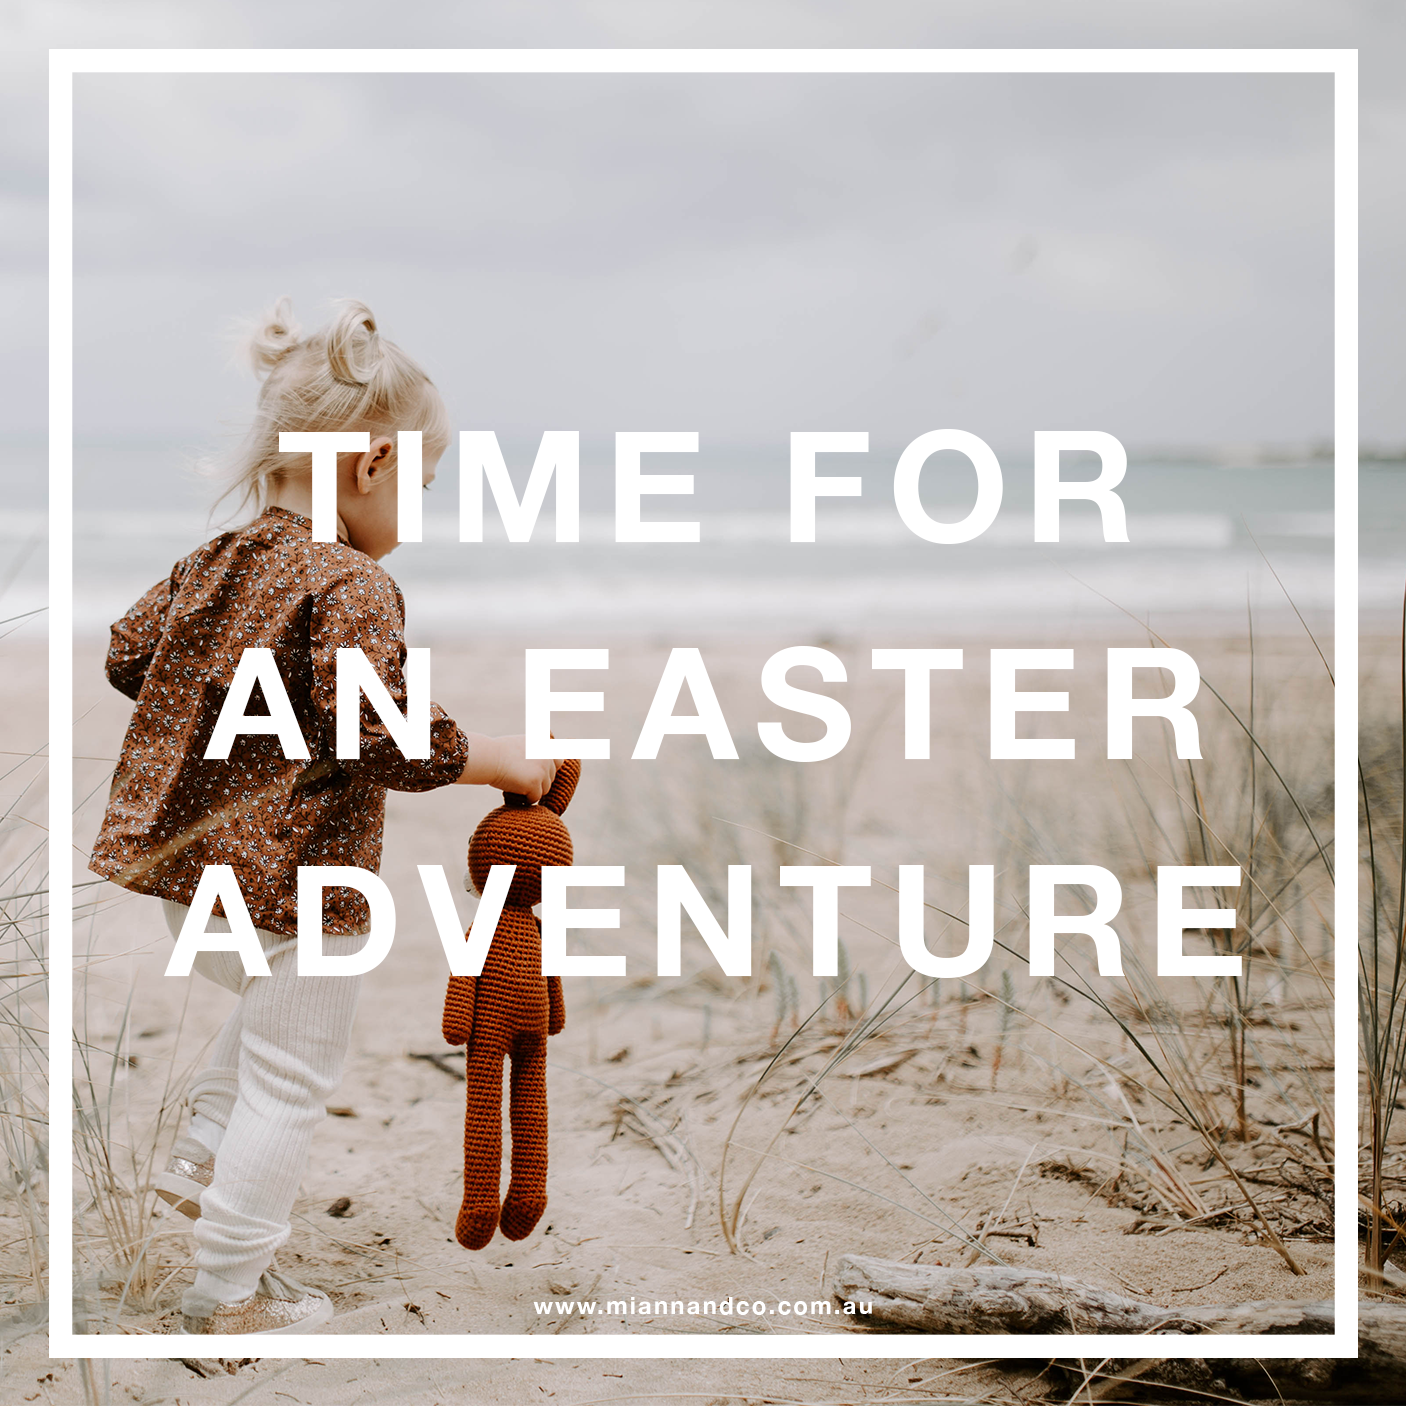 TIME FOR AN EASTER ADVENTURE